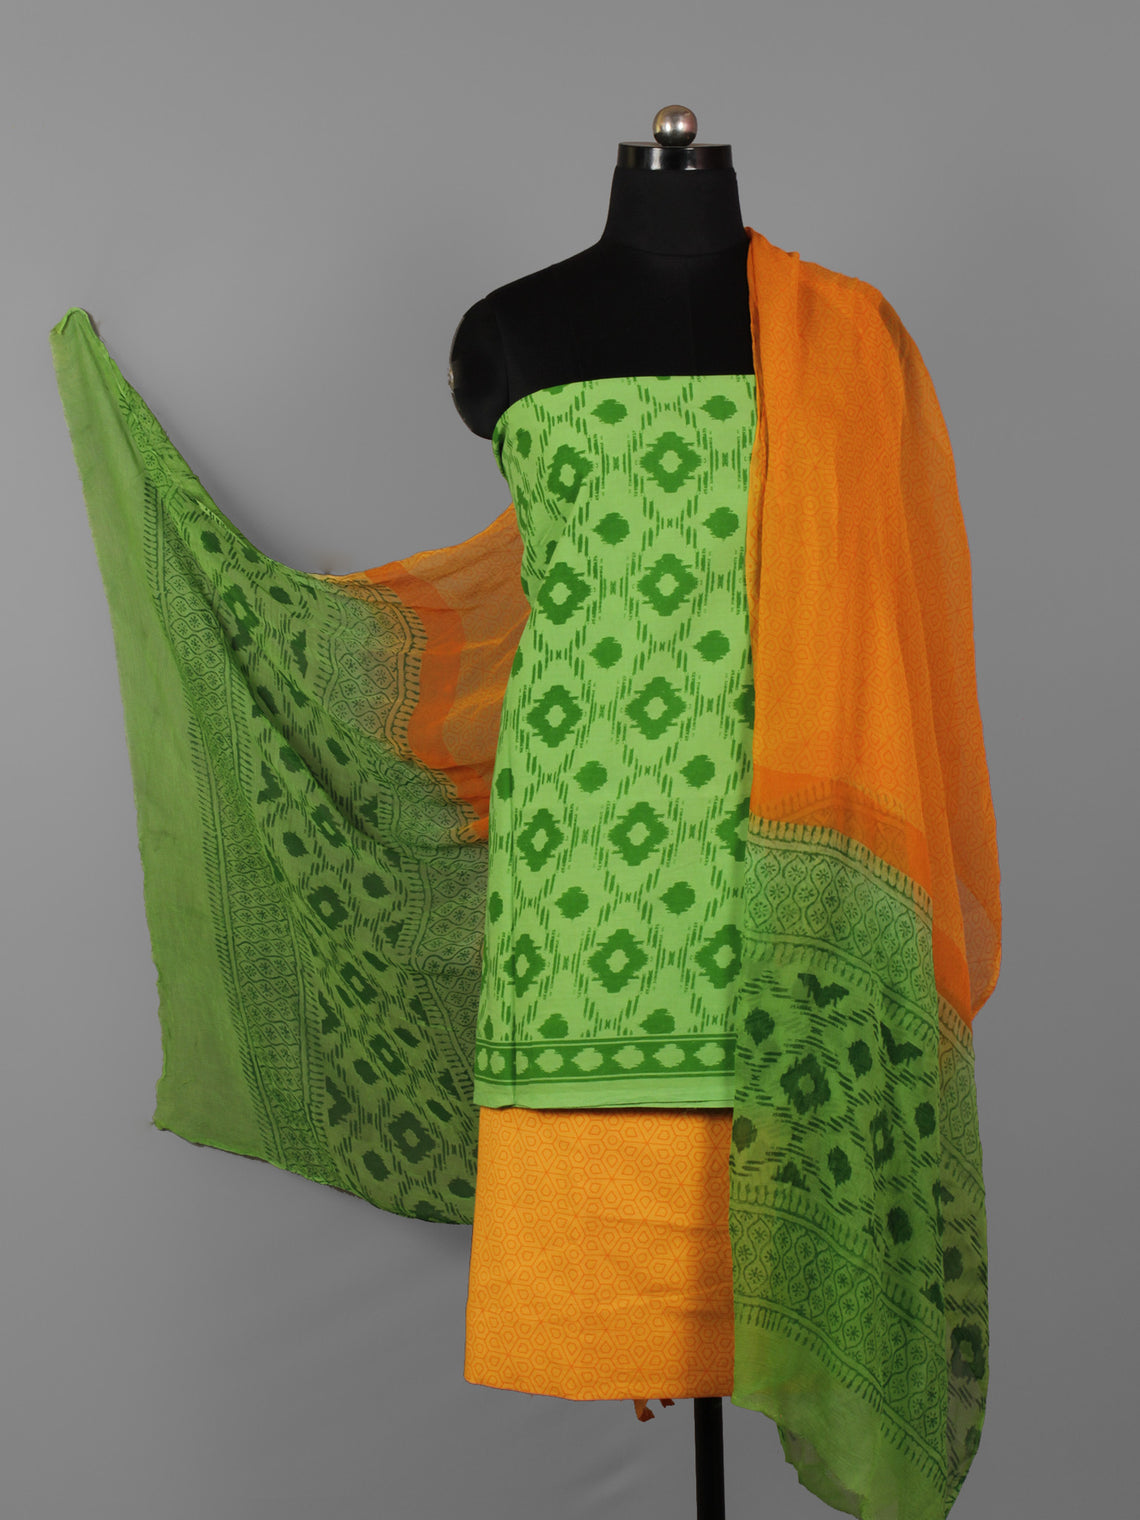 Green Orange Hand Block Printed Cotton Suit-Salwar Fabric With Chiffon Dupatta (Set of 3) - S16281304